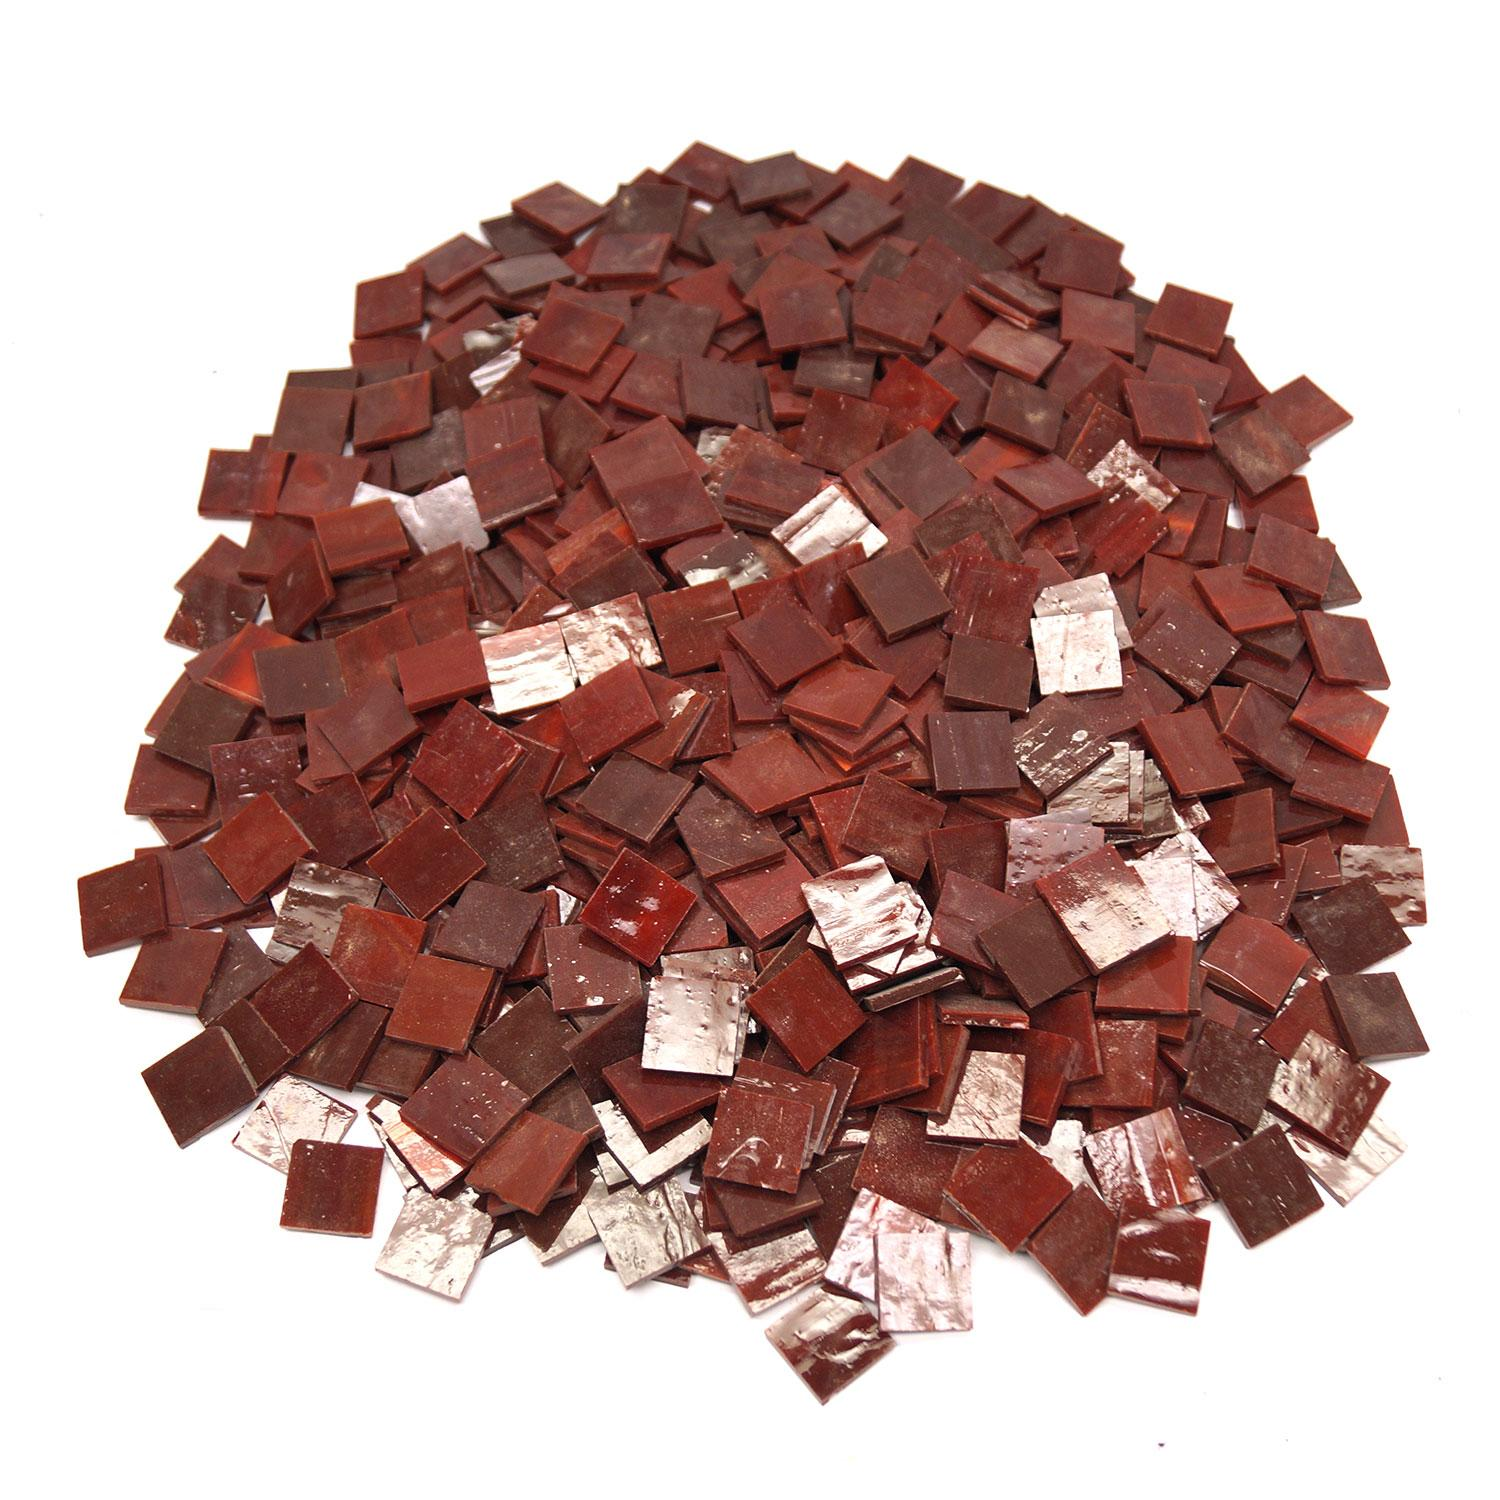 3/4 Red Opaque Stained Glass Chips - 700 Pieces